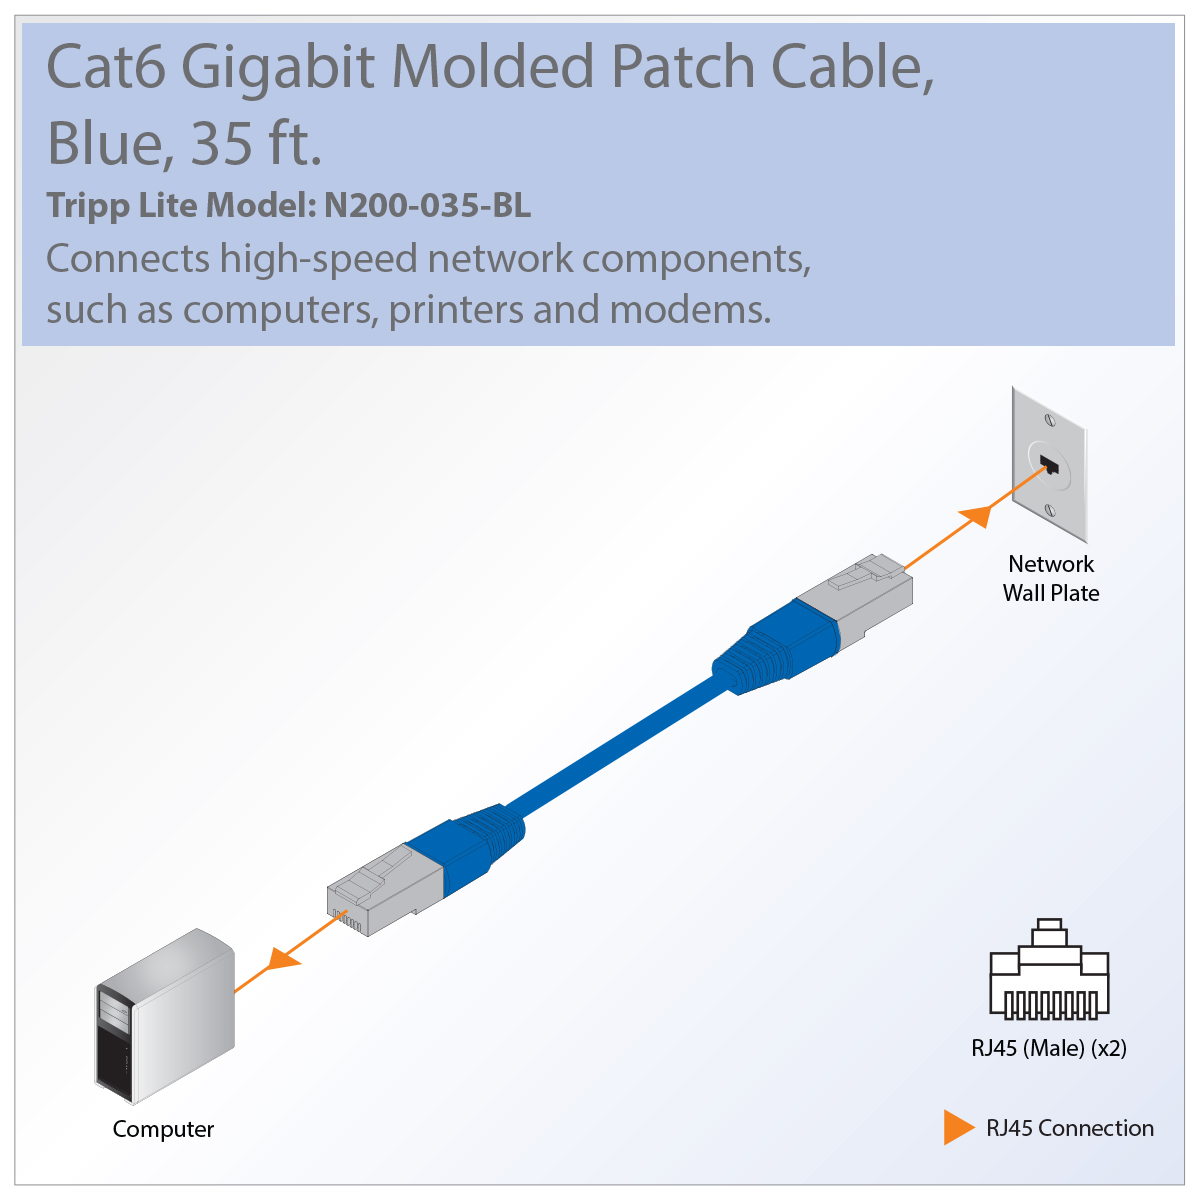 Tripp Lite Premium Cat5 Cat5e Cat6 Gigabit Molded Patch Cable 24 Awg Rj45 Connector Wiring Great For Connecting Components In Bandwidth Heavy Home Office Networks